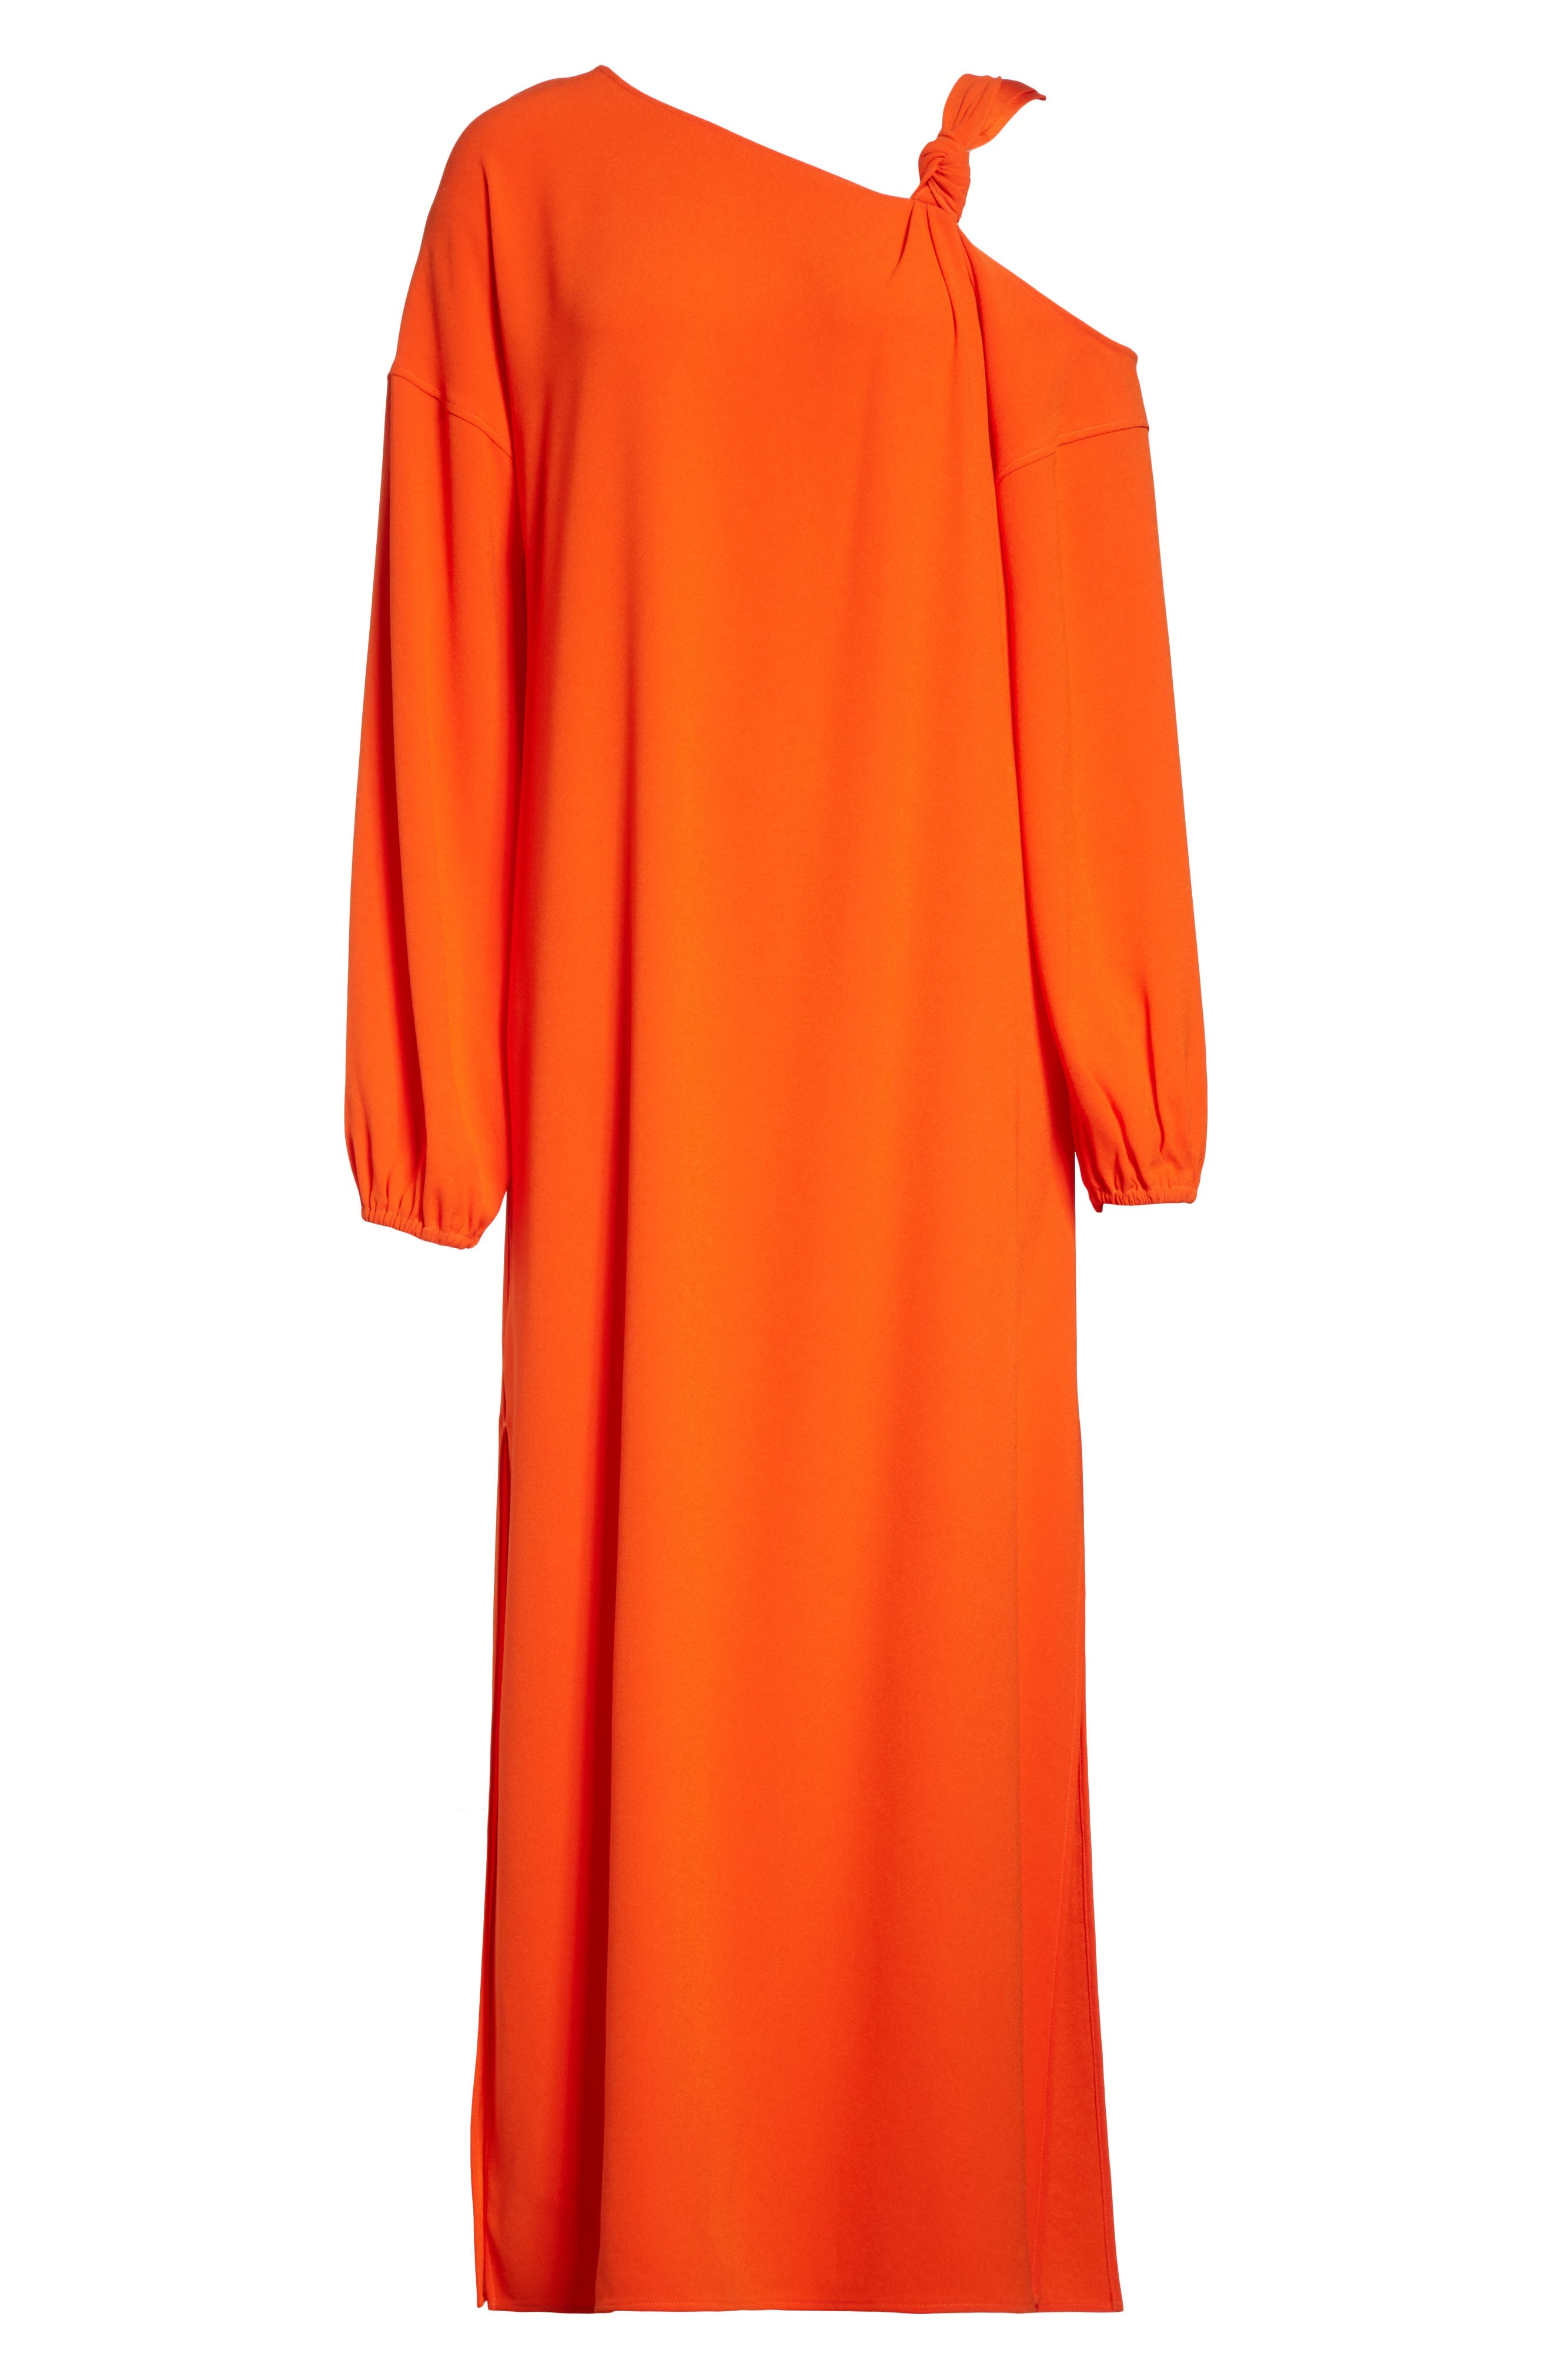 Shontae One-Shoulder Maxi Dress,                             Alternate thumbnail 7, color,                             Tangerine